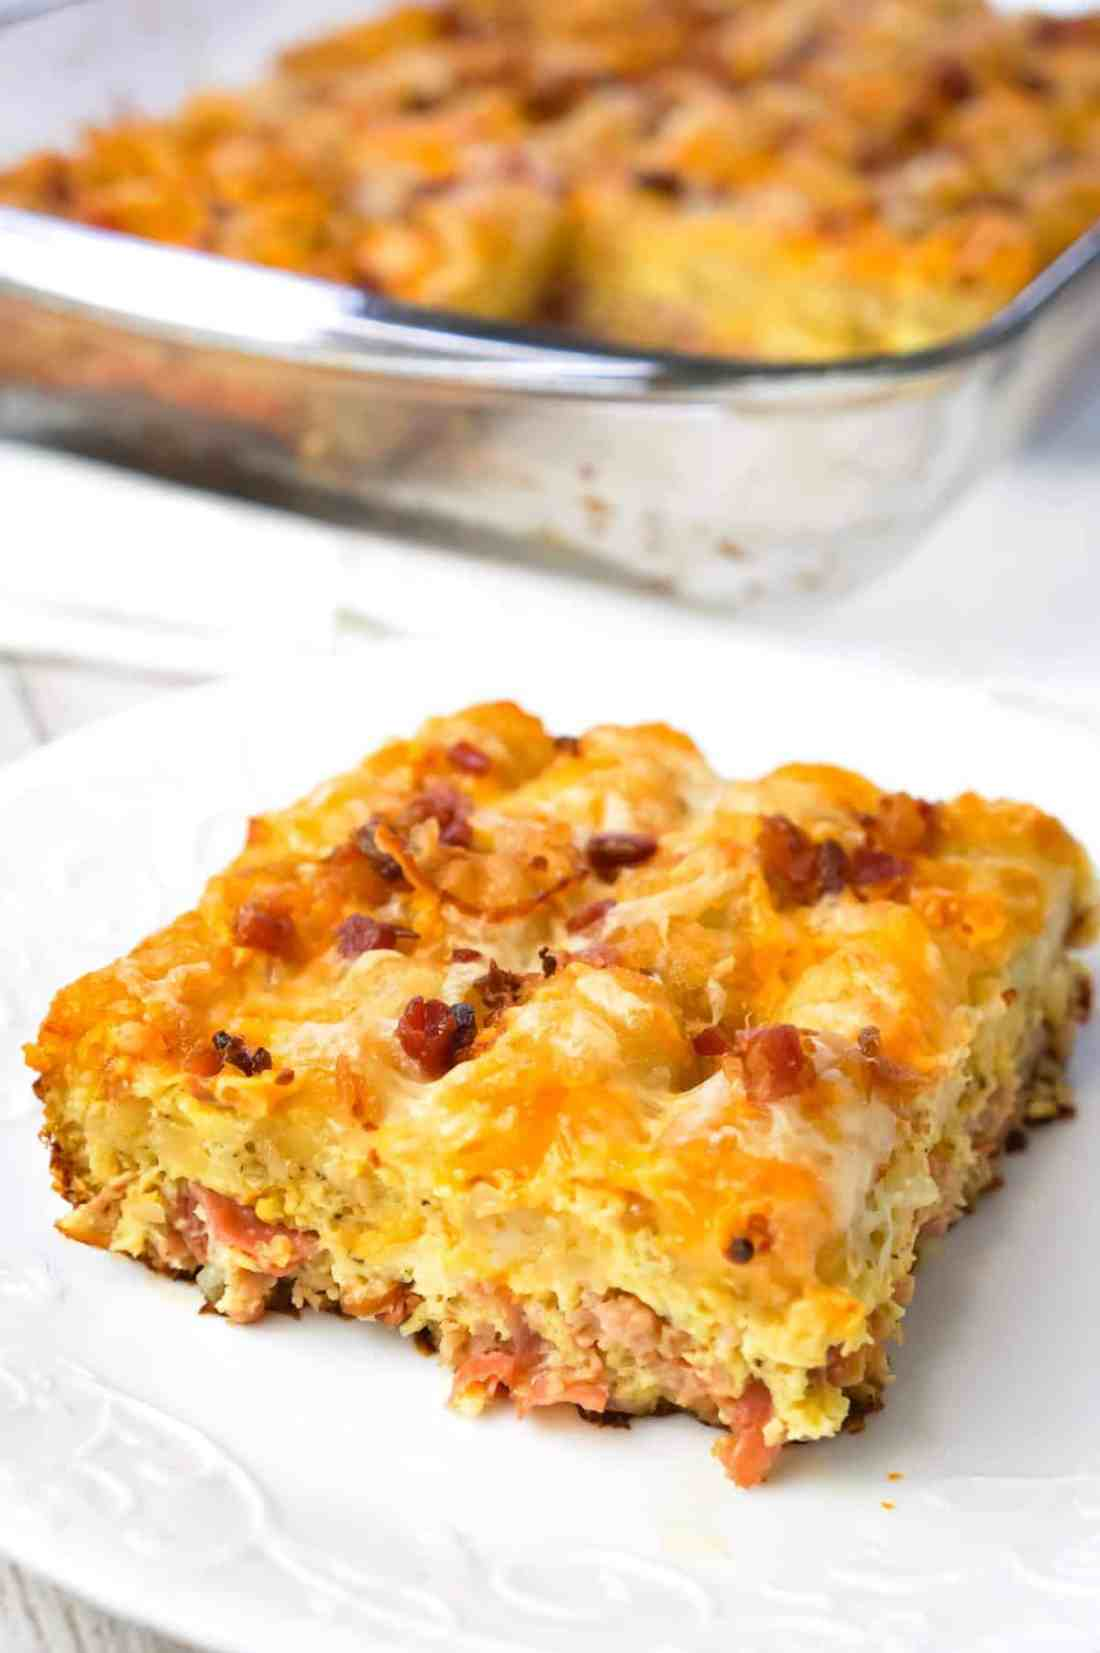 Tater Tot Breakfast Casserole - This is Not Diet Food